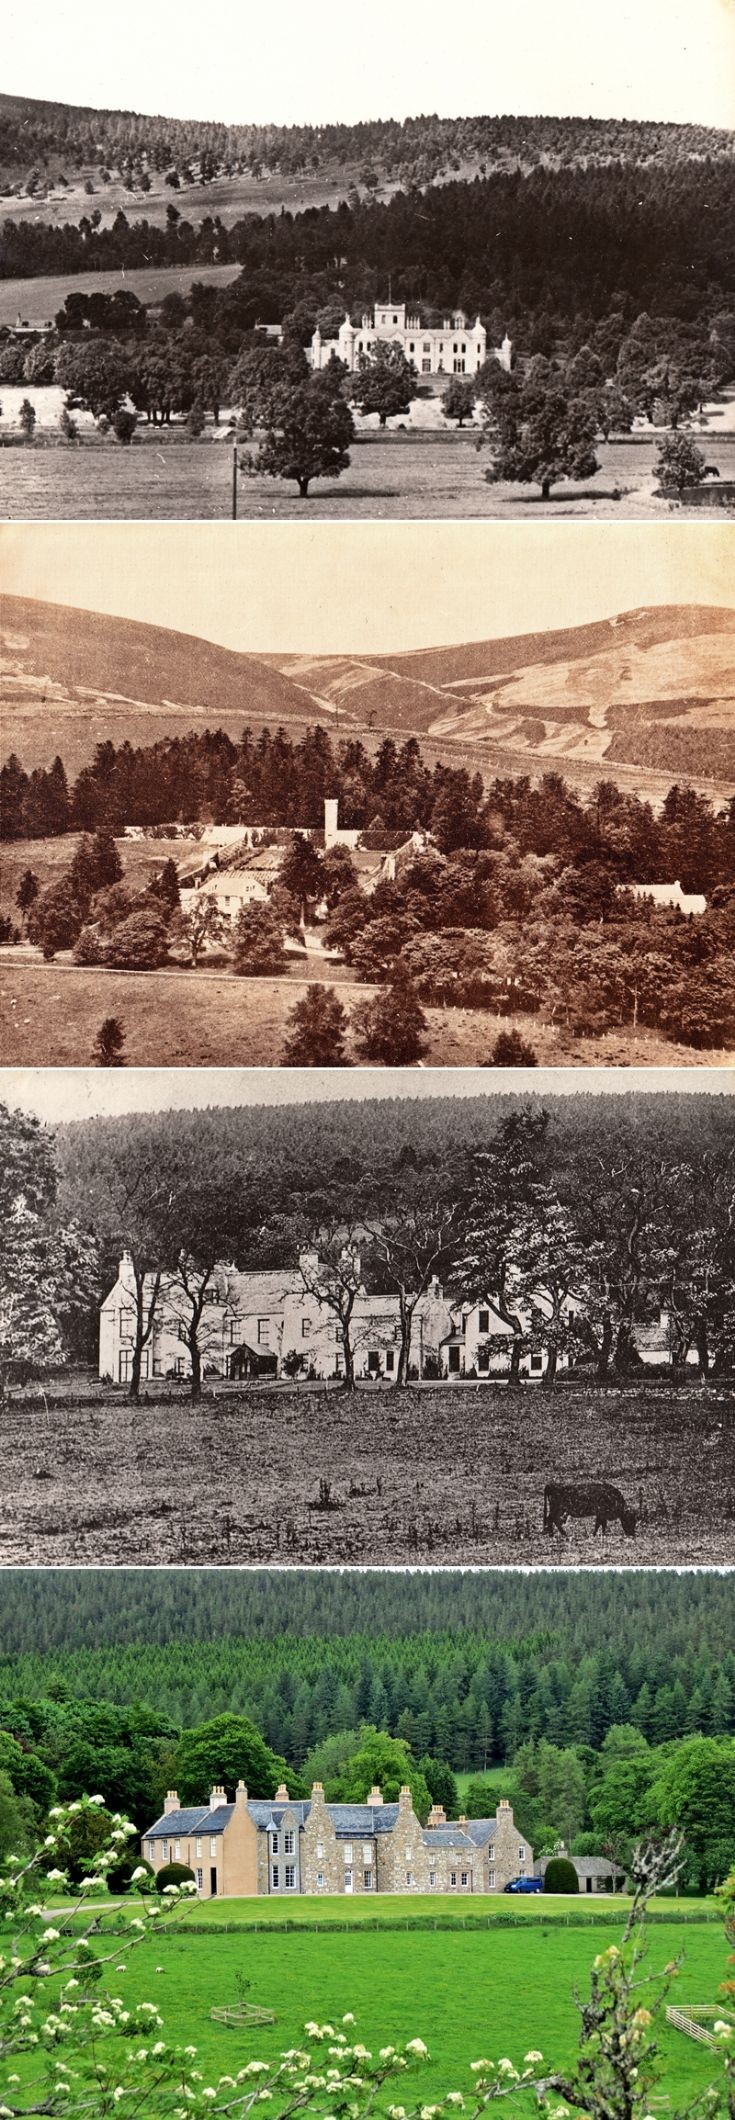 184 Great Houses of Strathdon